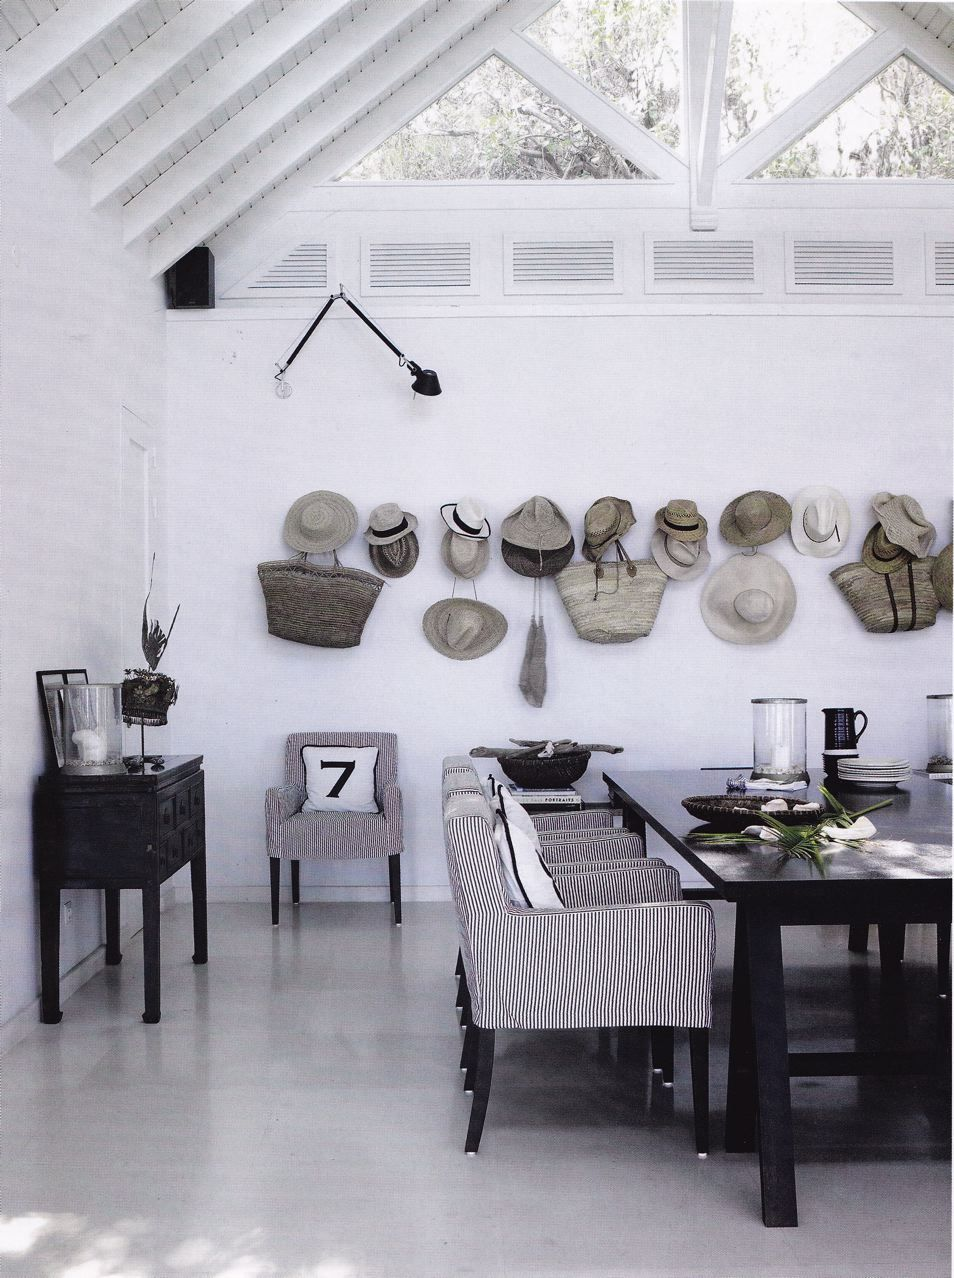 Have a walk in closet with one wall for hanging bags like these you